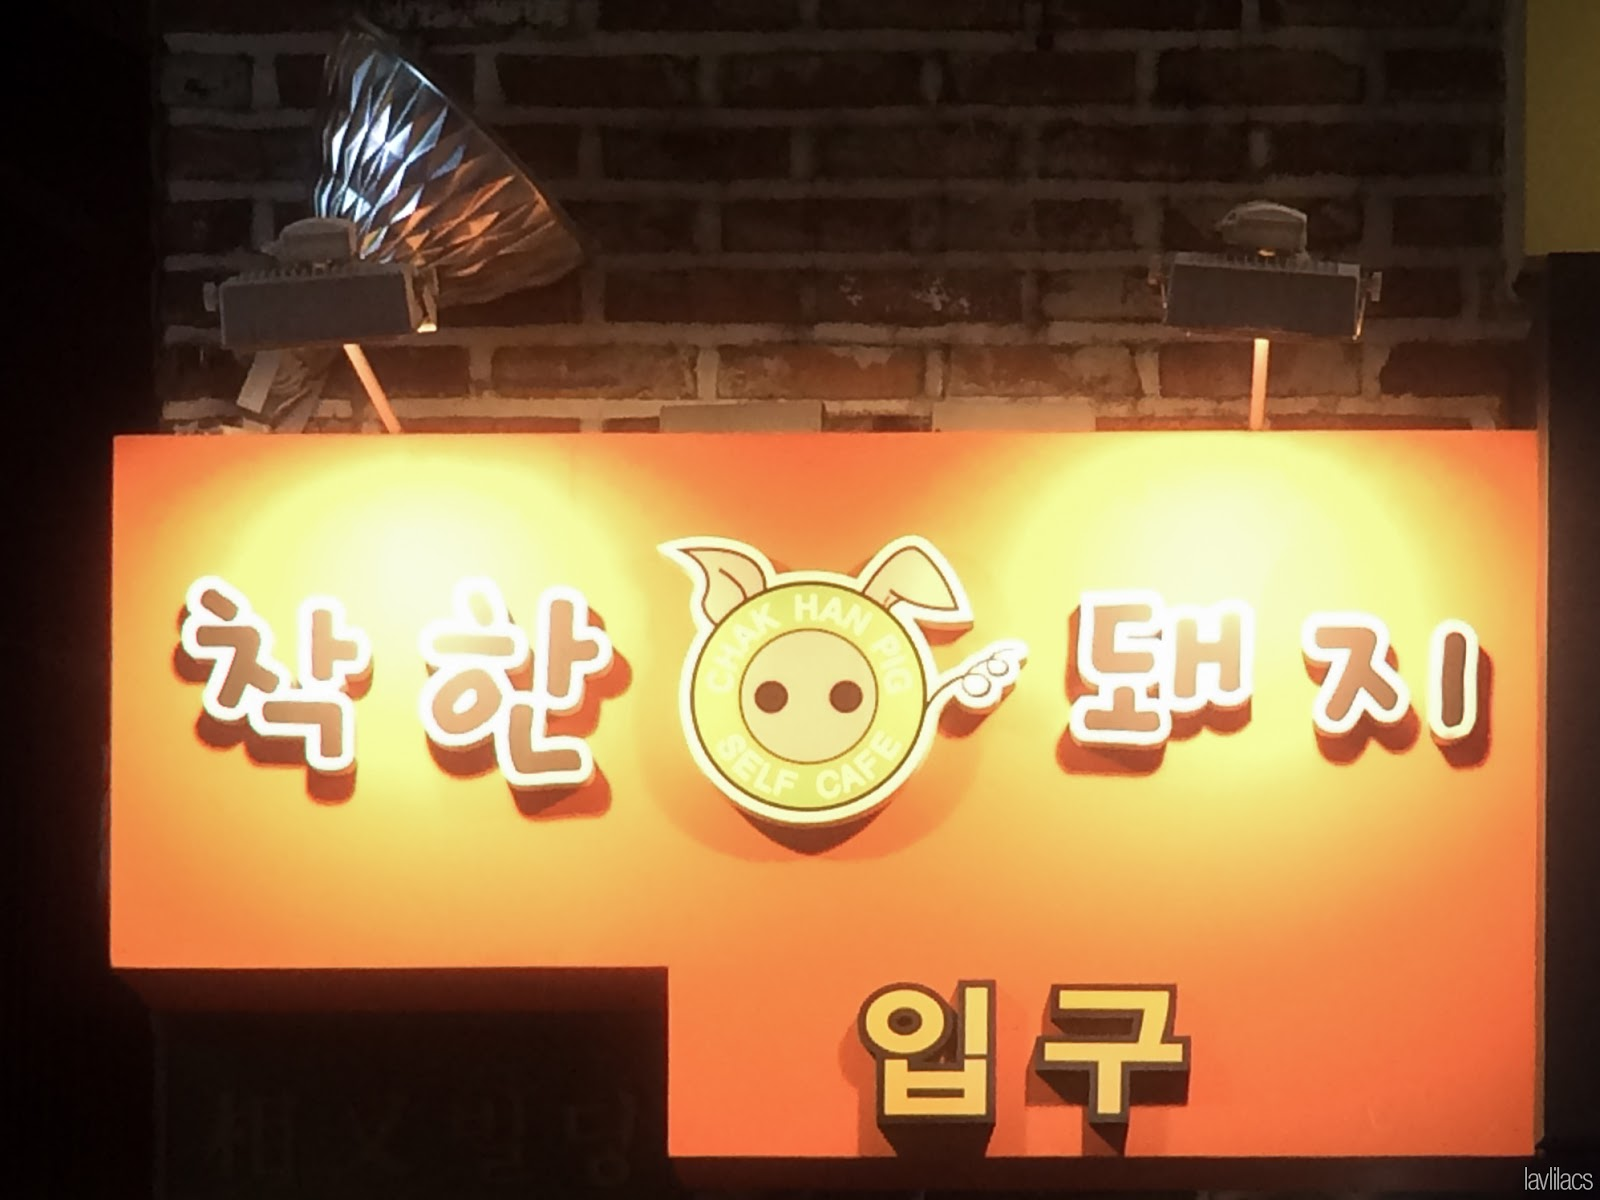 Seoul, Korea - Summer Study Abroad 2014 - Sinchon Chakhan Pig Self Cafe 착한돼지 - All You Can Eat KBBQ entrance